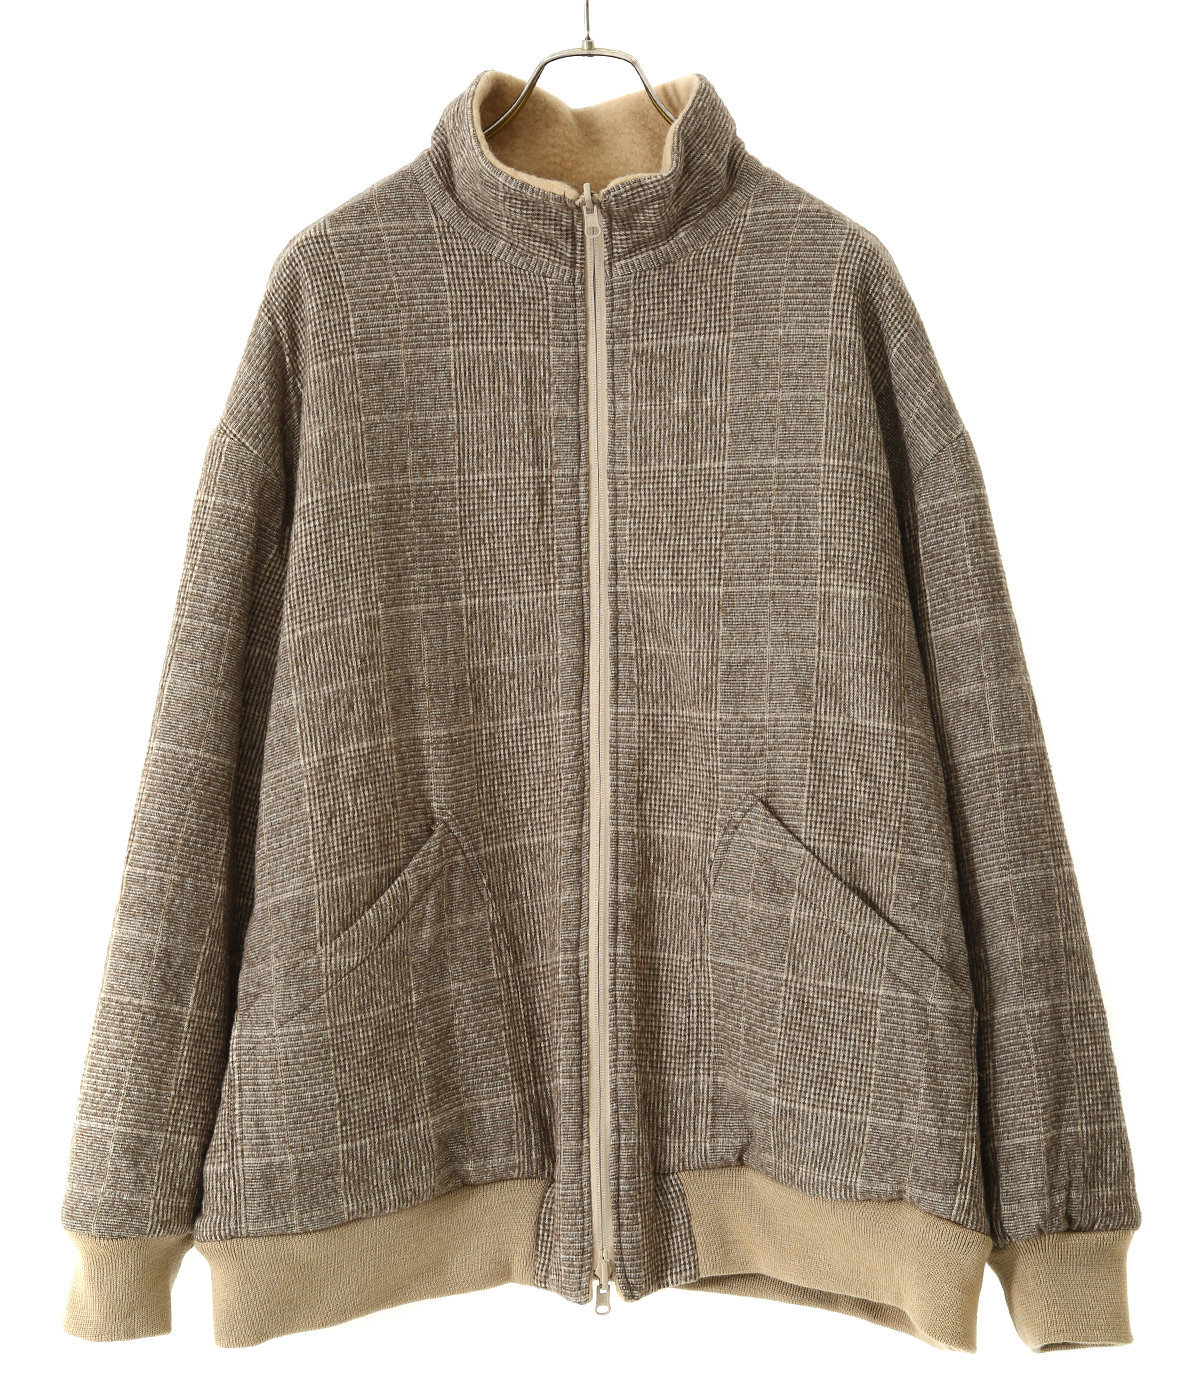 【予約】BOUCLE WOOL KNIT × MILLING C/W TWILL REVERSIBLE JACKET